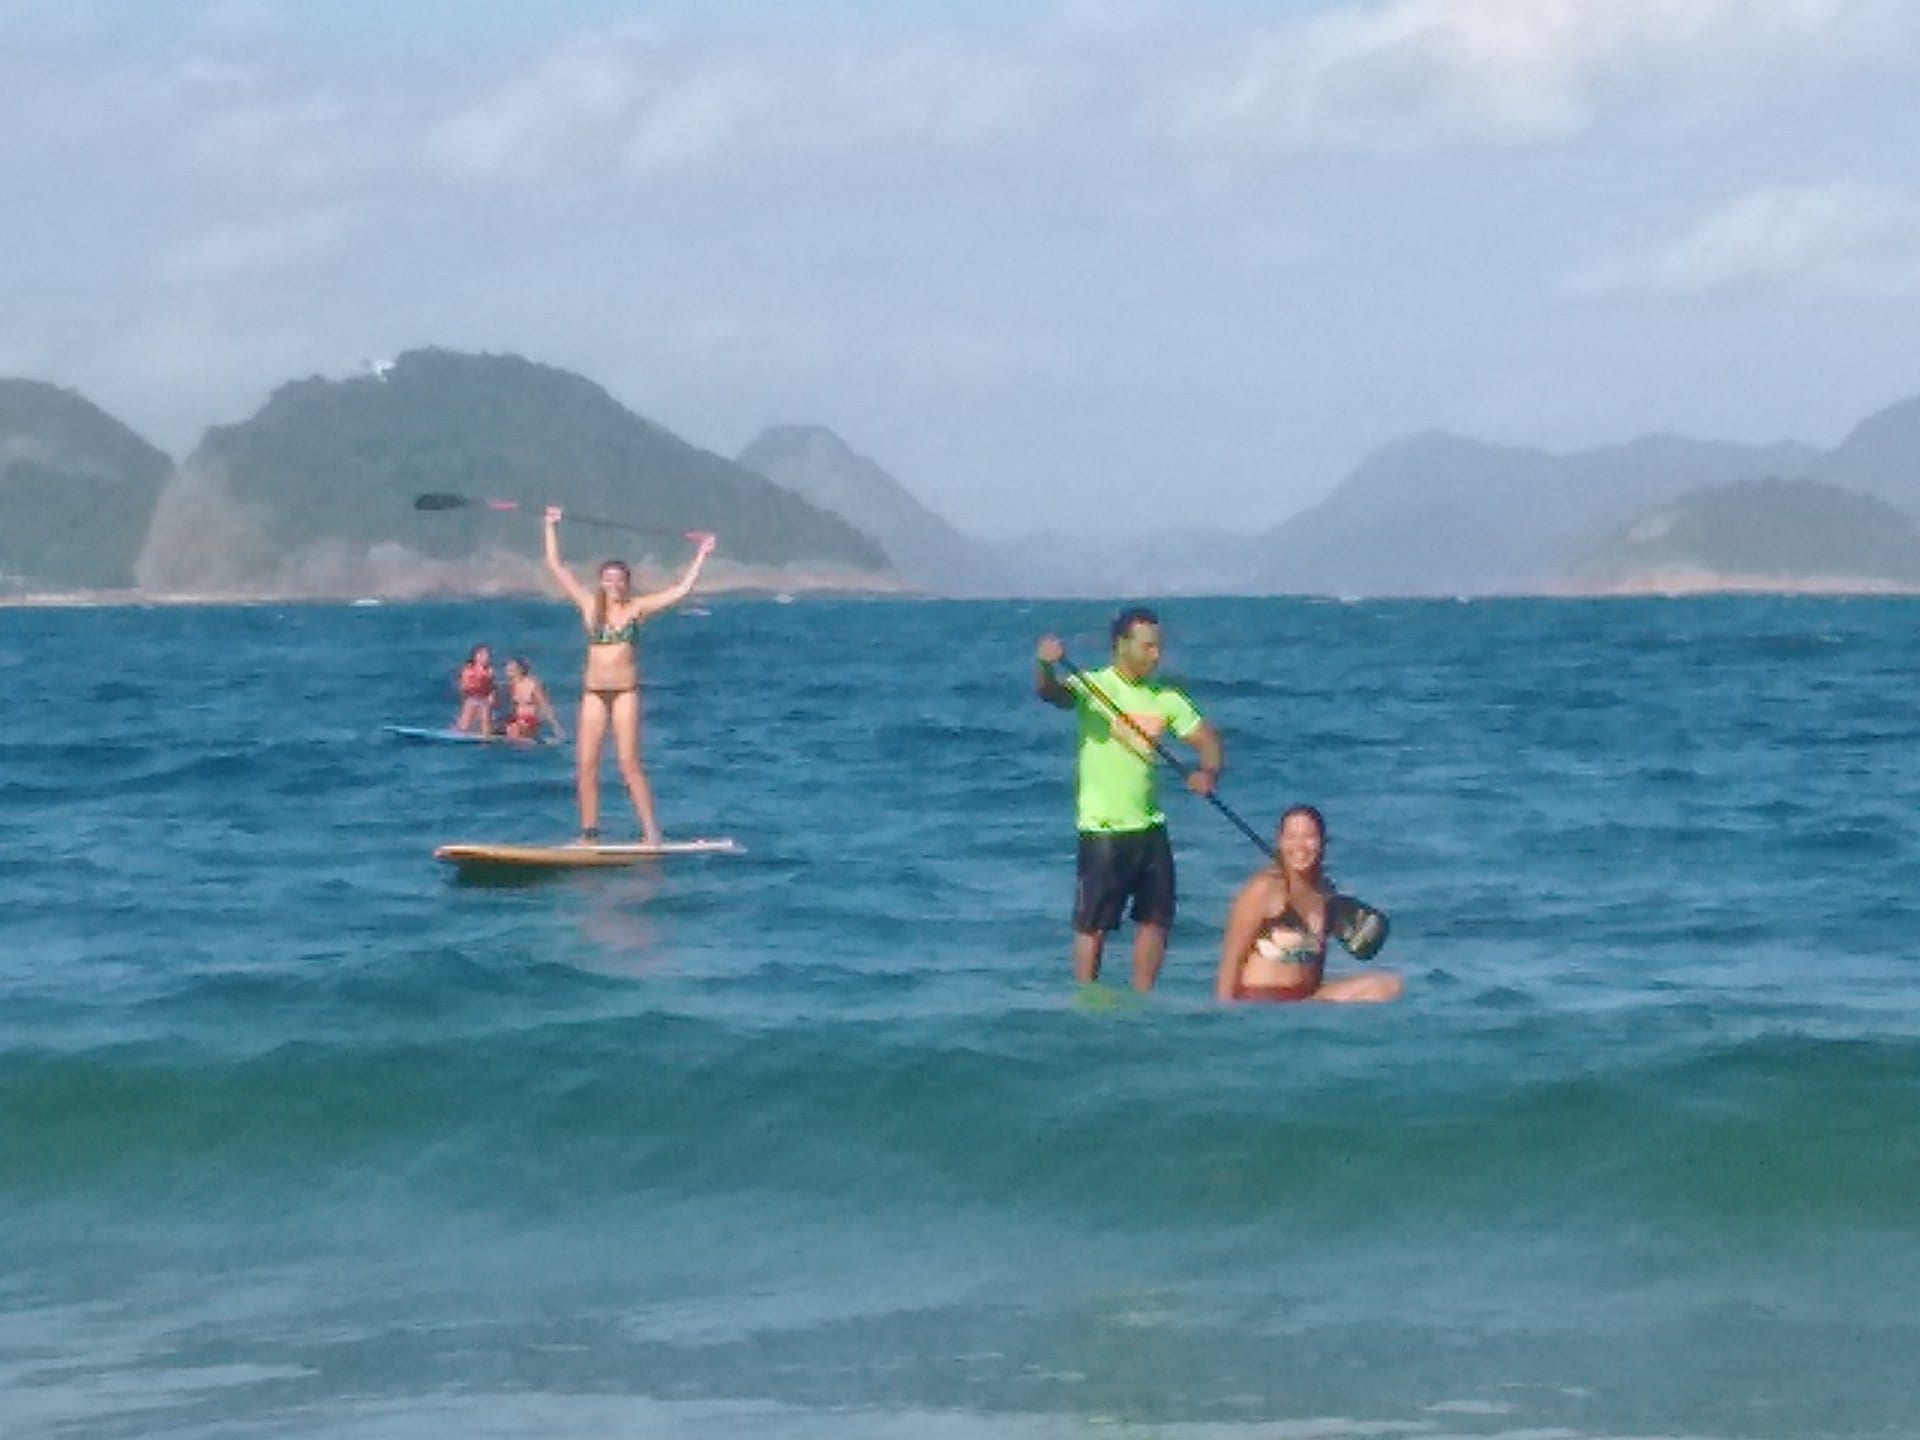 Learn Portuguese and get a golden tan. Class feeling good after seeing 4 turtles while doing a SUP session.